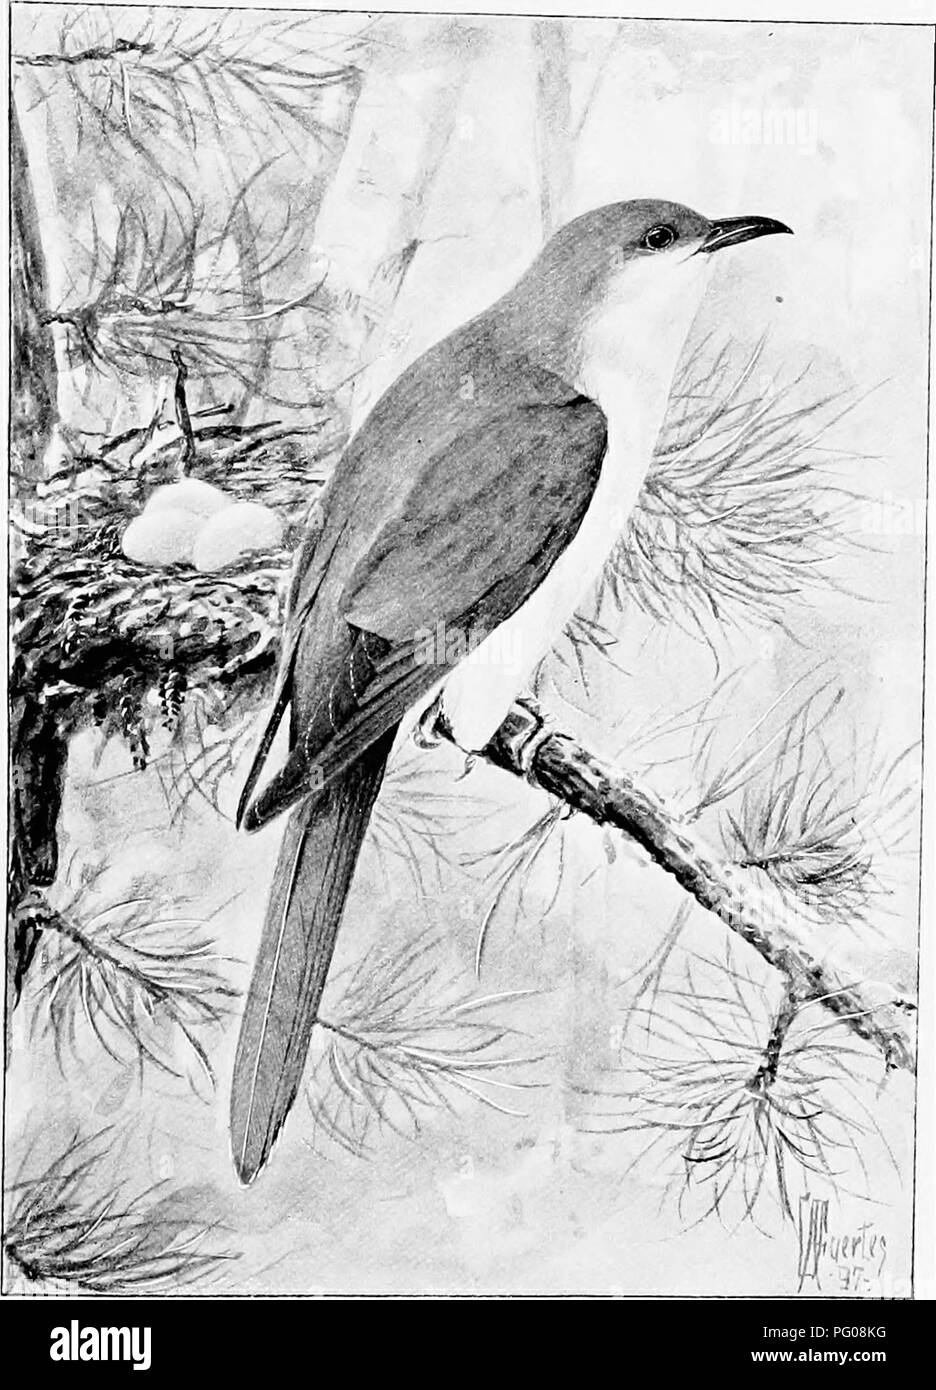 . Song birds and water fowl. Birds; Water birds. CUCKOO The poor cuckoos find themselves in a dilemma that baffles instinct itself (p. 106).. Please note that these images are extracted from scanned page images that may have been digitally enhanced for readability - coloration and appearance of these illustrations may not perfectly resemble the original work.. Parkhurst, Howard Elmore, 1848-1916; Fuertes, Louis Agassiz, 1874-1927. New York, C. Scribner's Sons Stock Photo